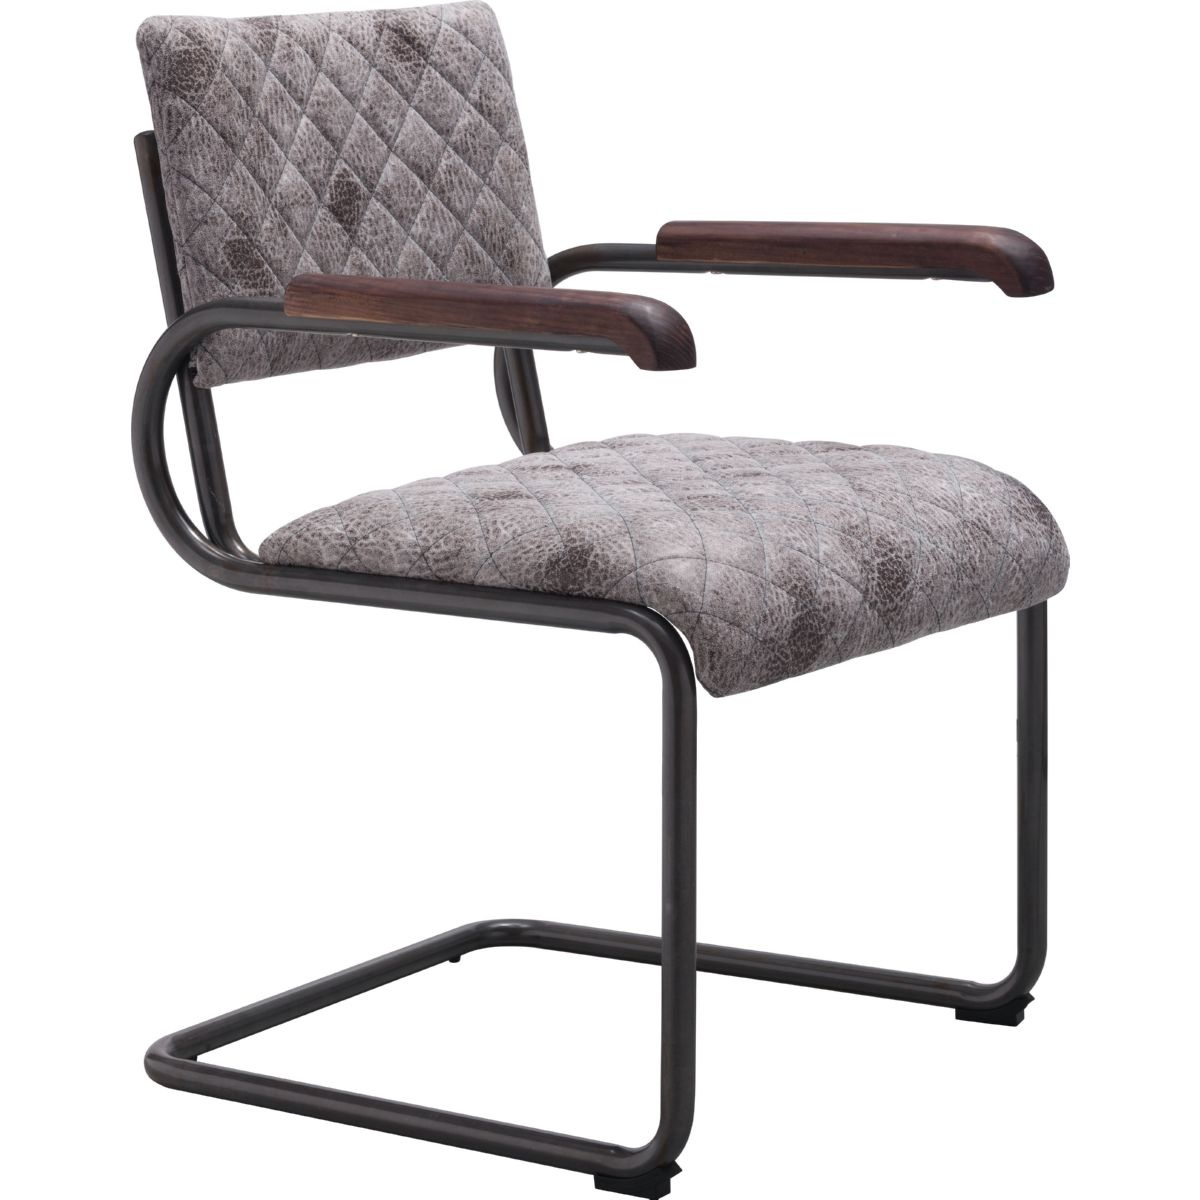 Groovy Furniture What Are Some Great Dining Chair Options With A Gmtry Best Dining Table And Chair Ideas Images Gmtryco